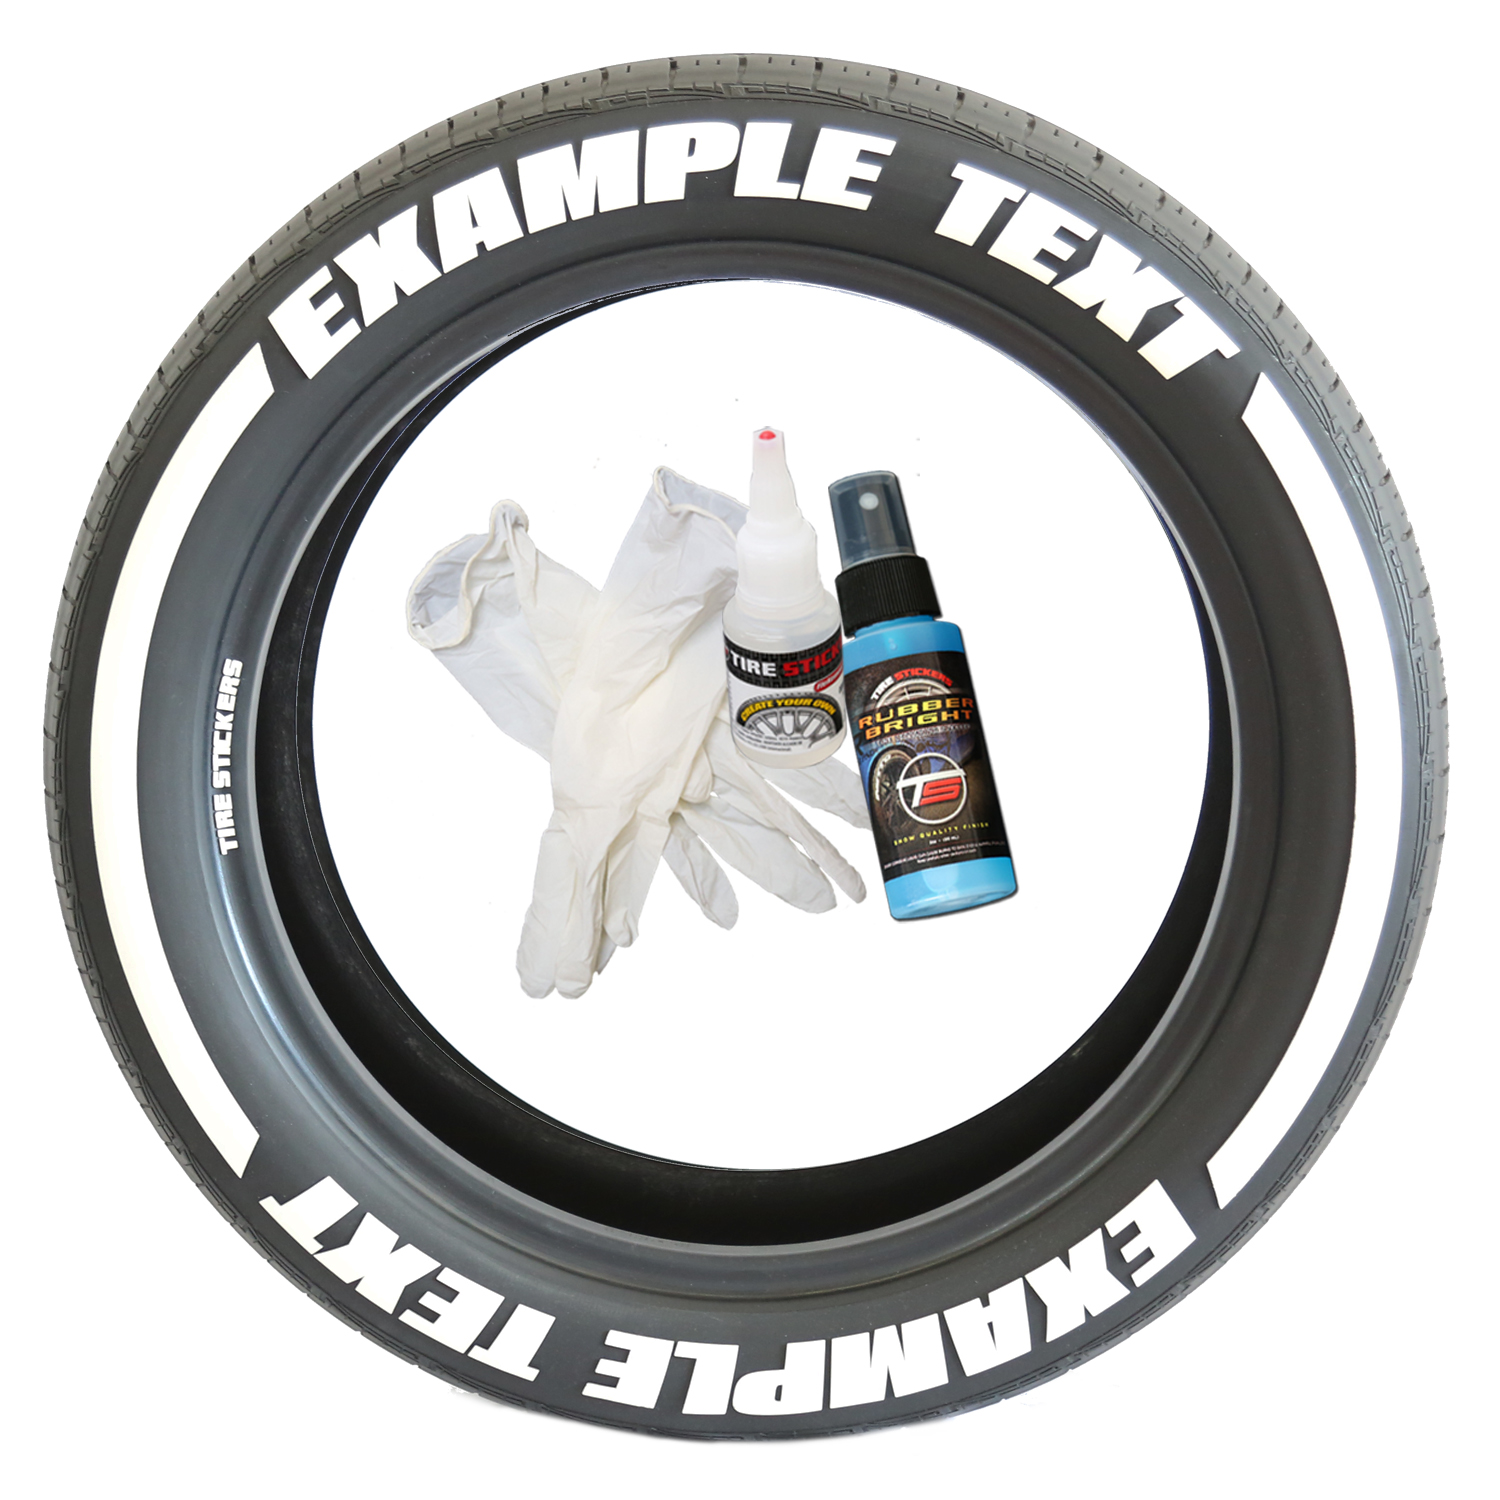 Tire graphics formula 1 style tire lettering tire stickers